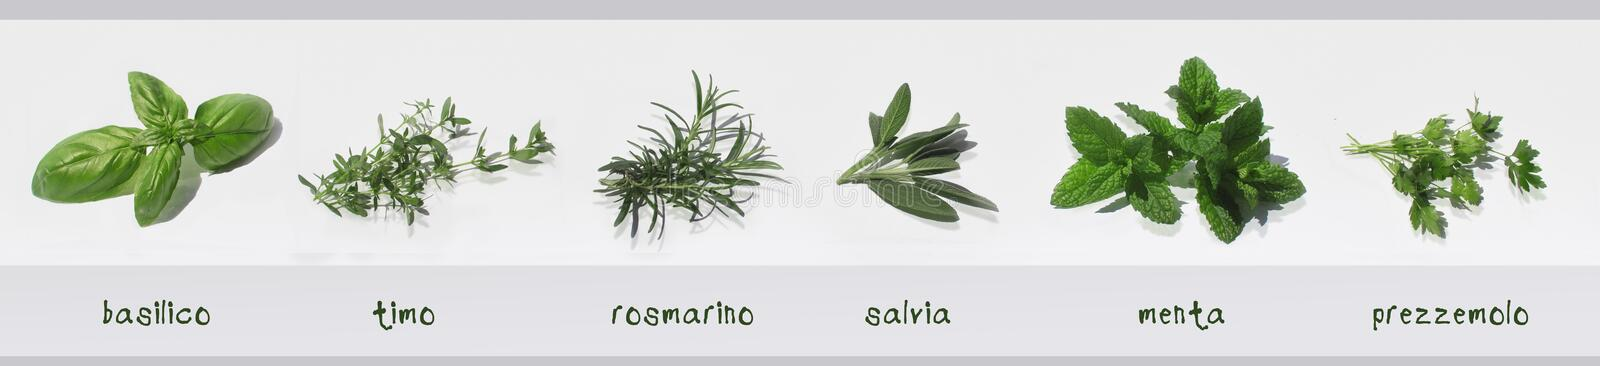 Spices fresh herbs isolated with their names in Italian: basil, thyme, rosemary, sage, mint, parsley stock photos